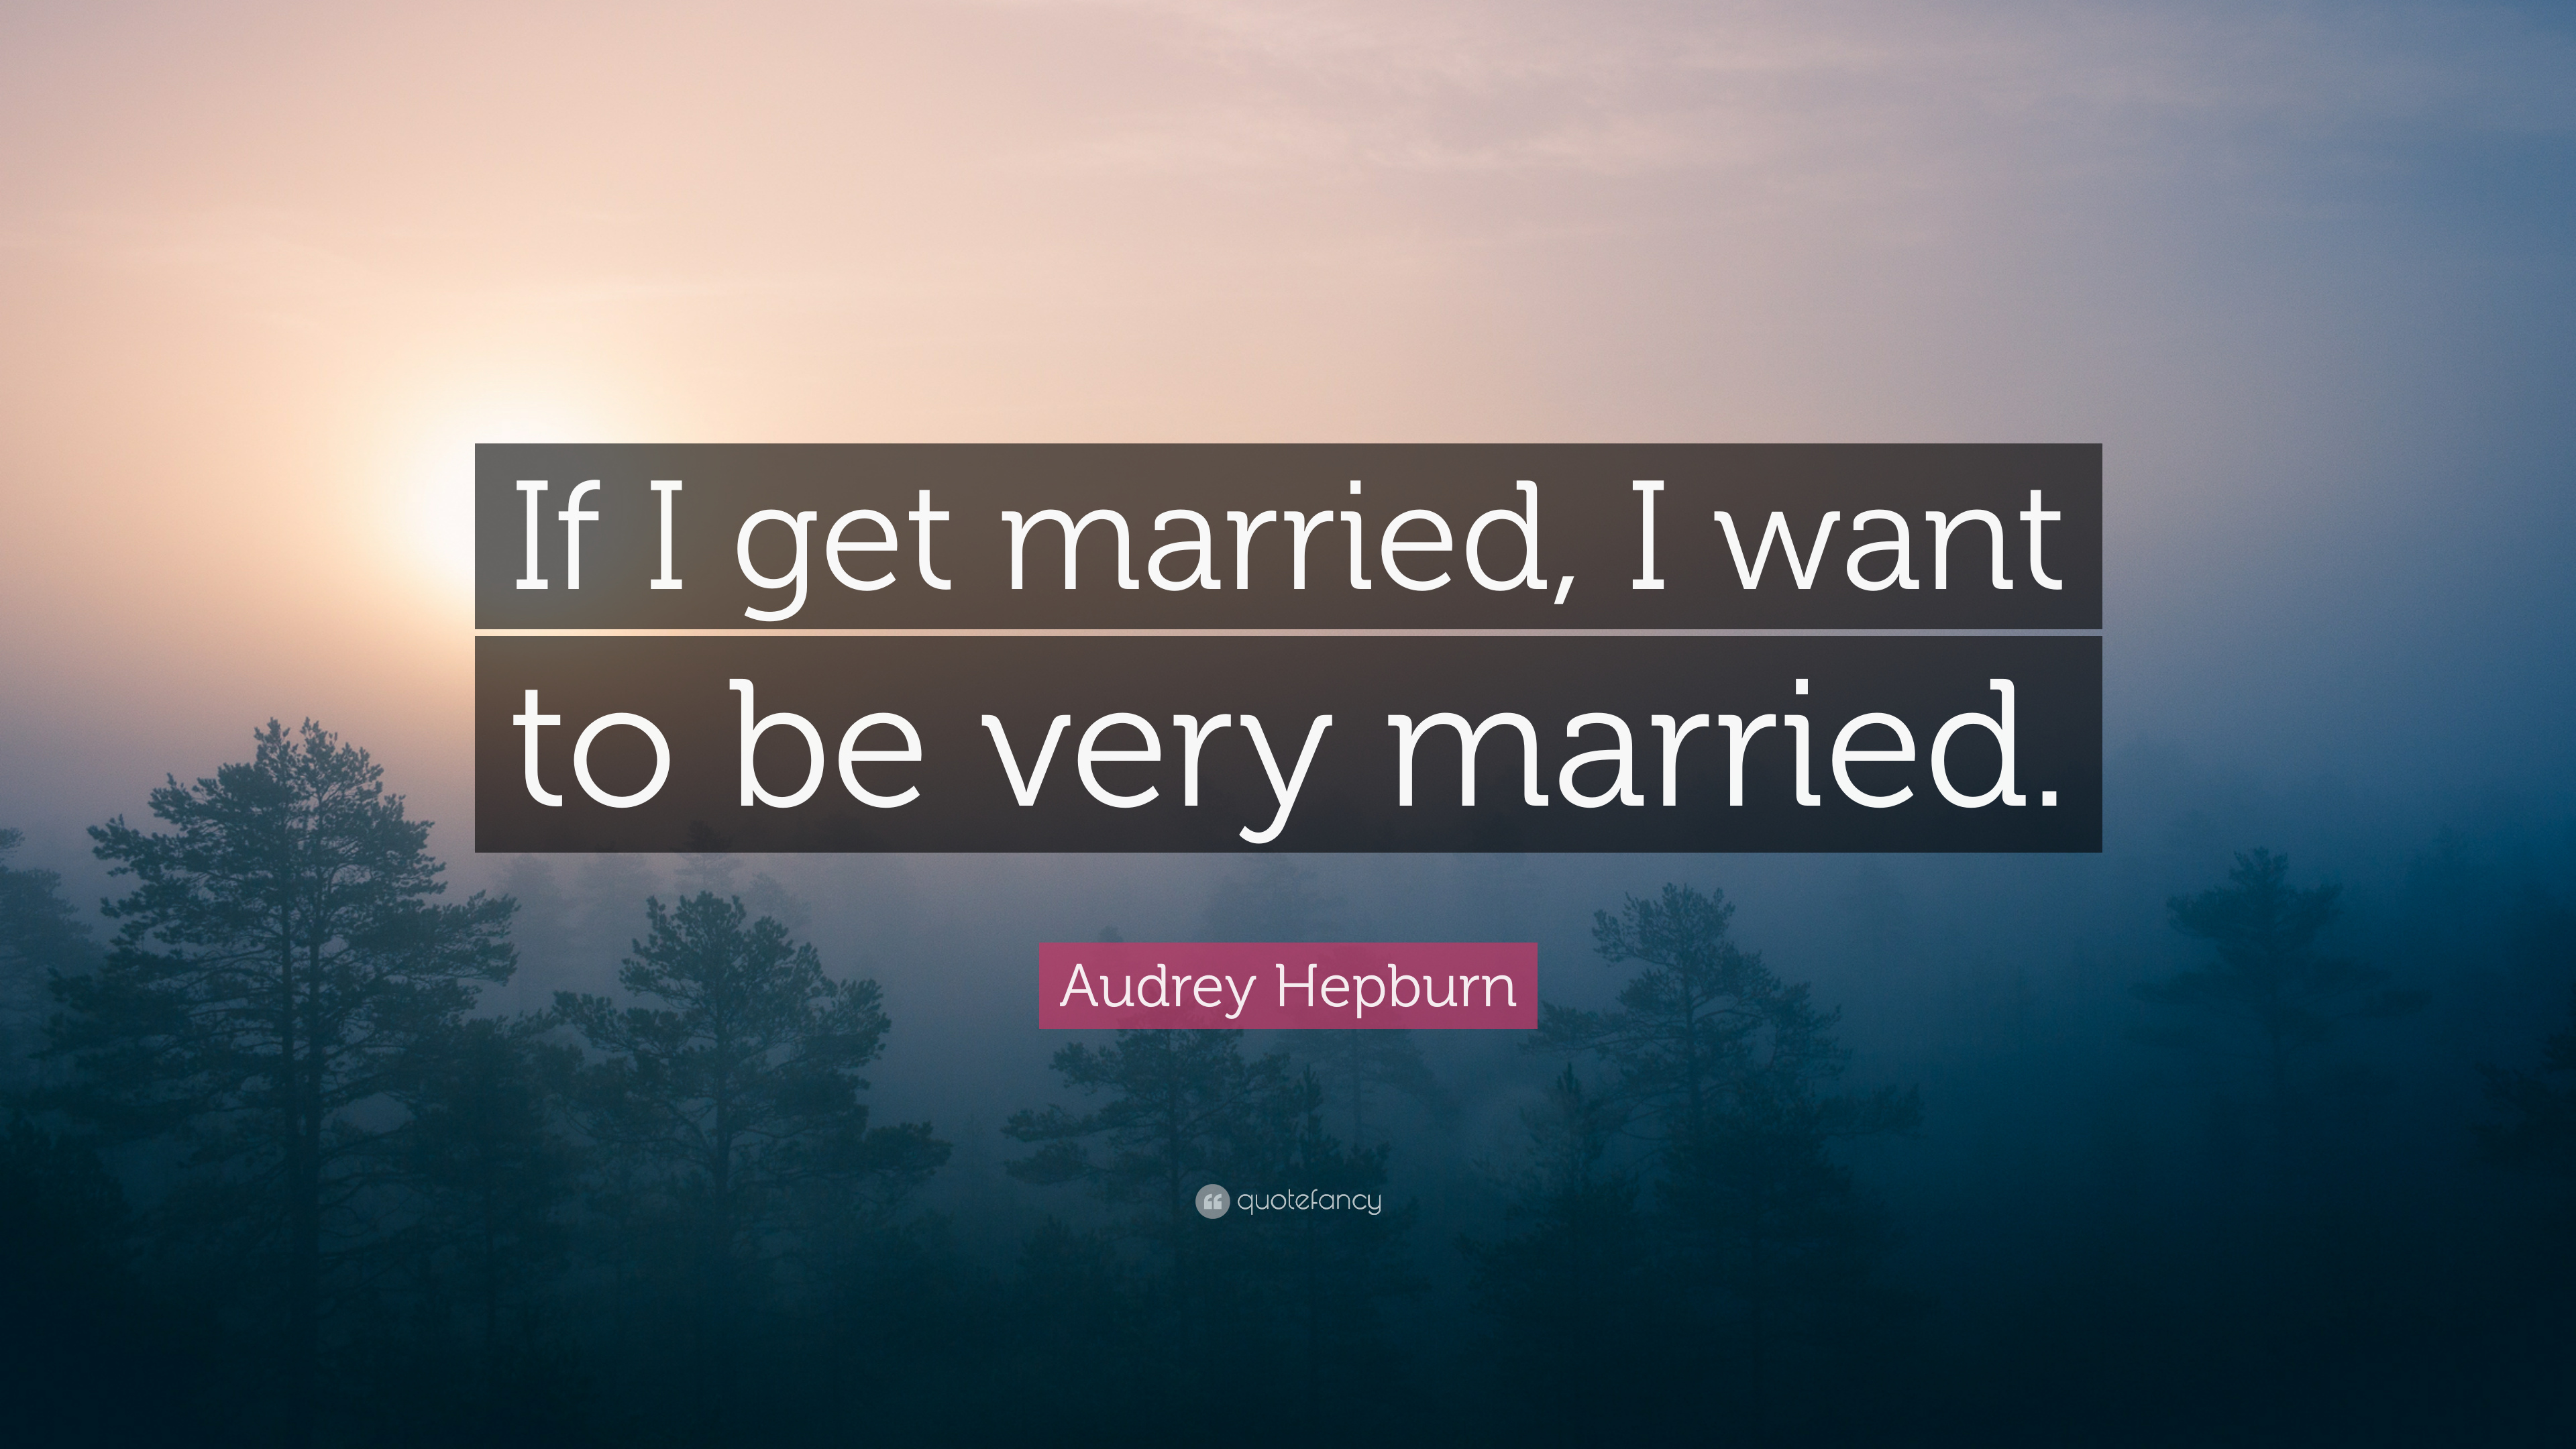 Audrey Hepburn Quote: If I get married, I want to be very